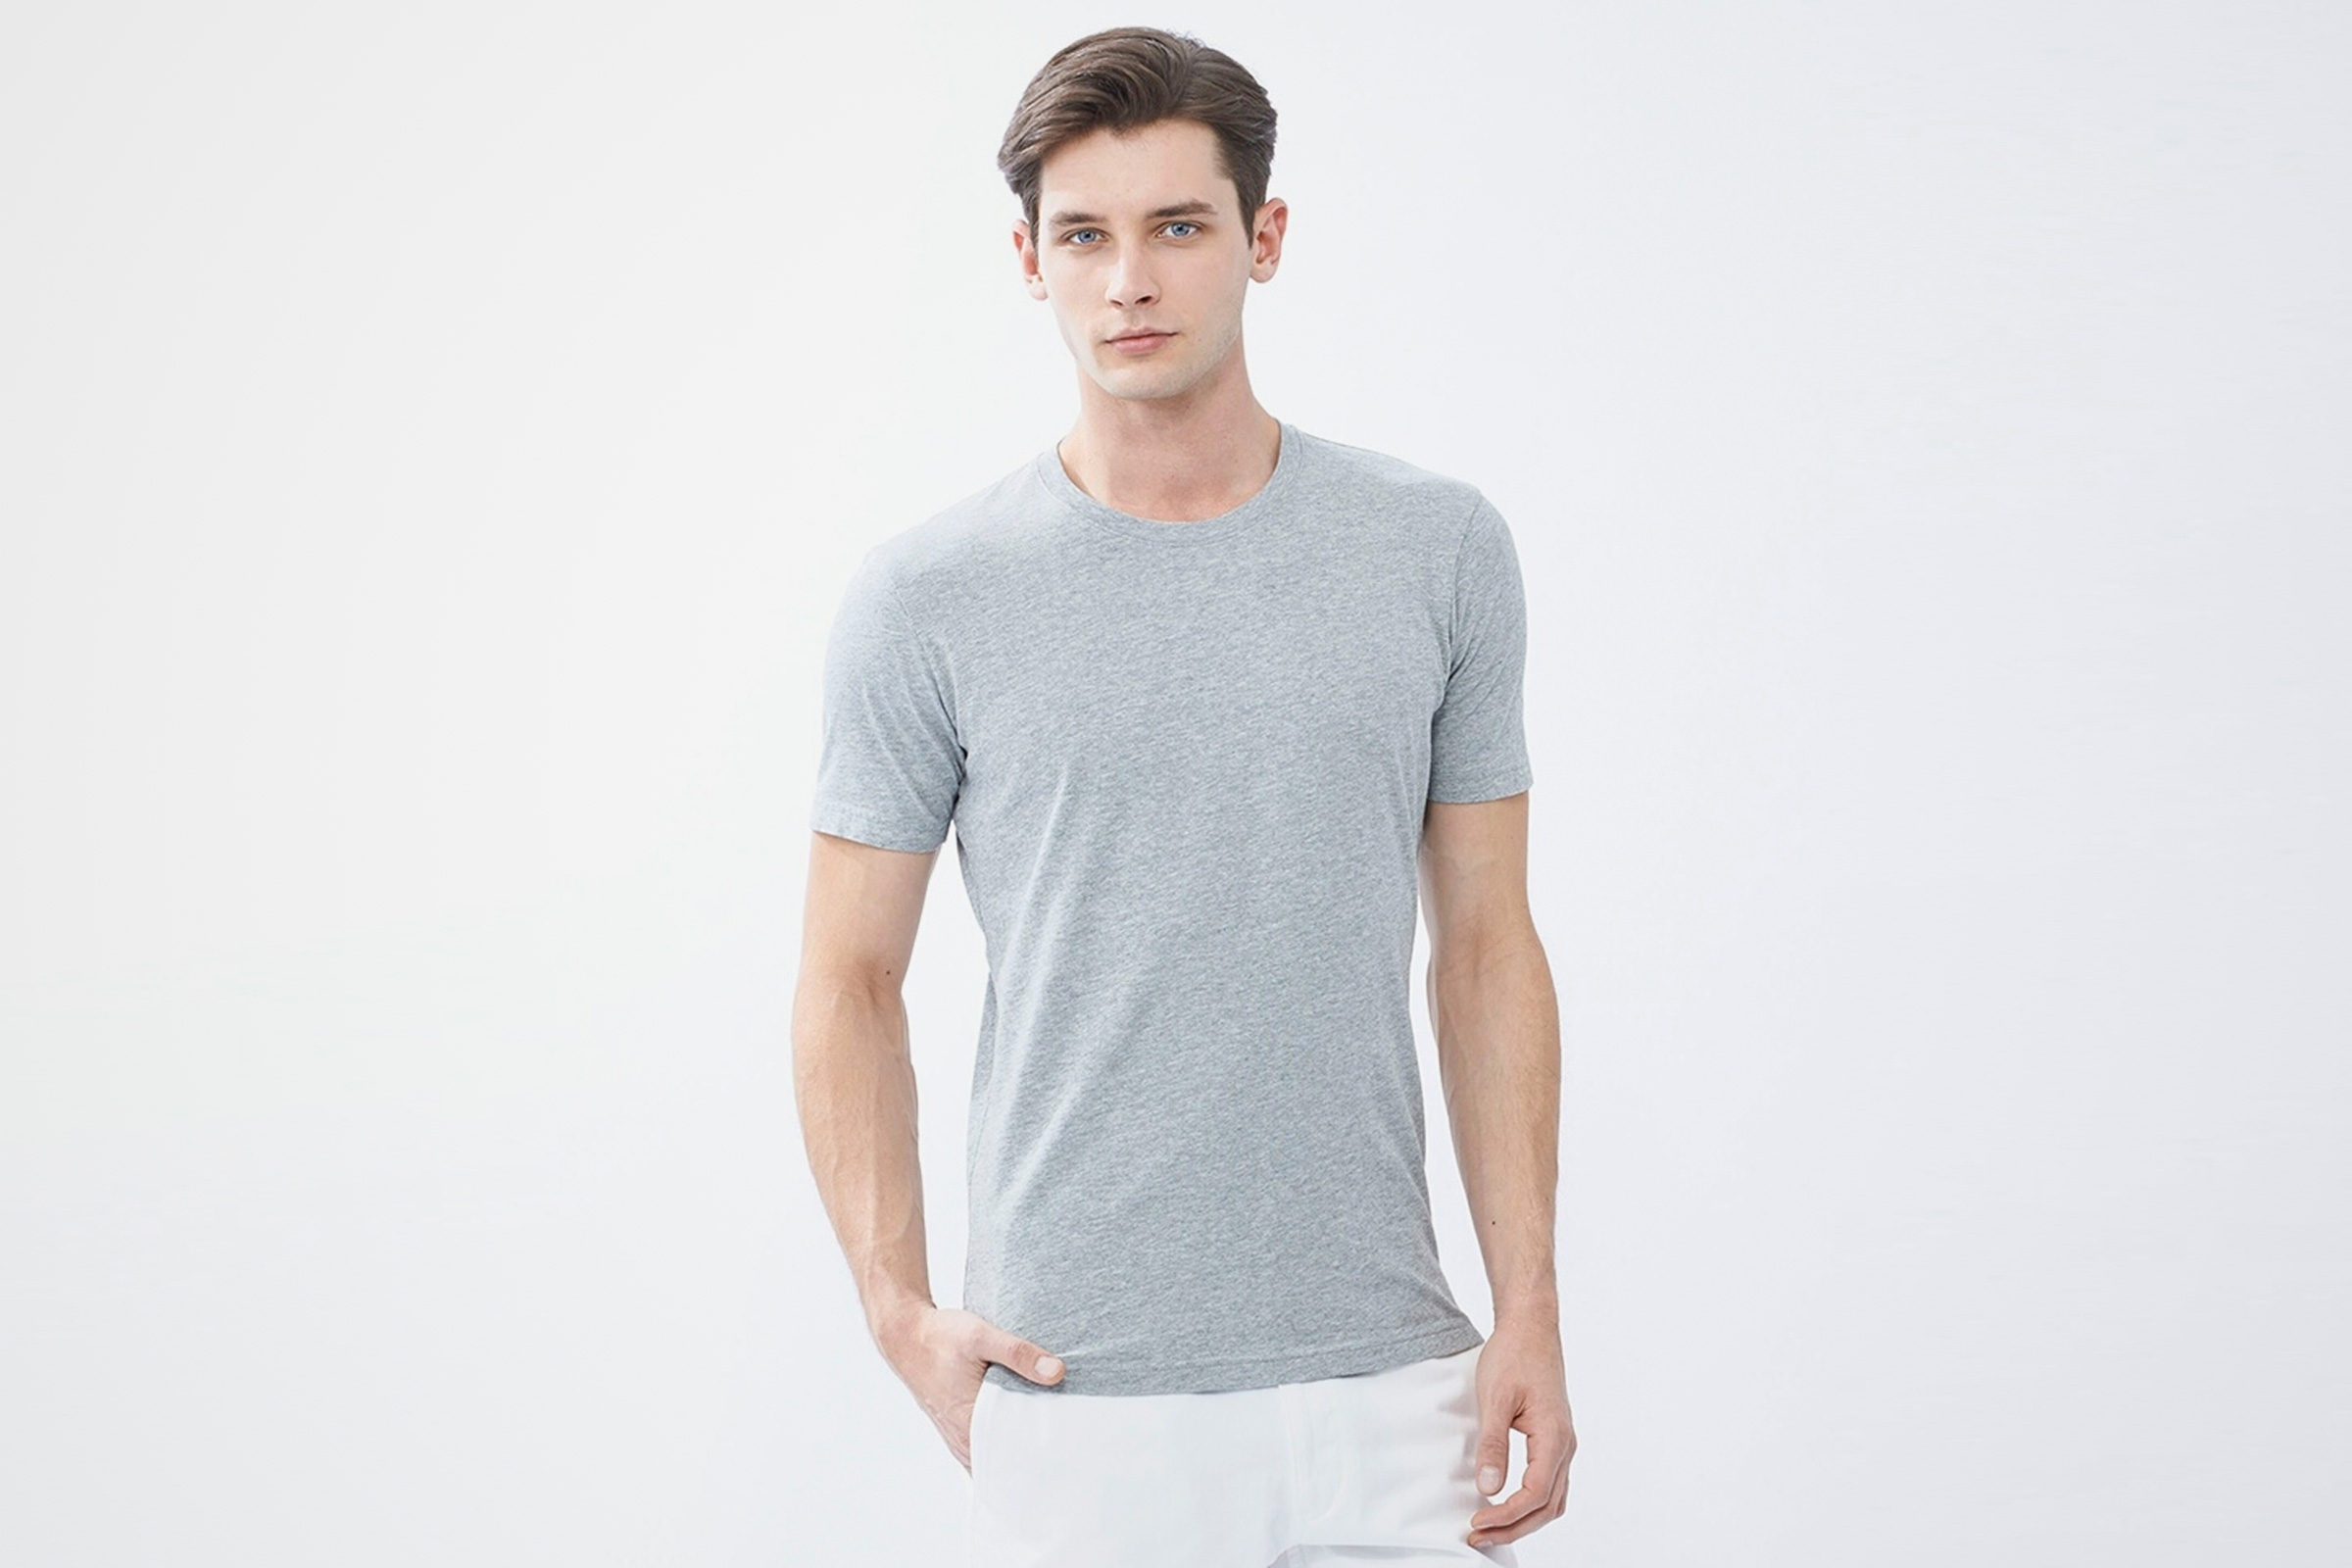 Men's Basic Tees UNIQLO